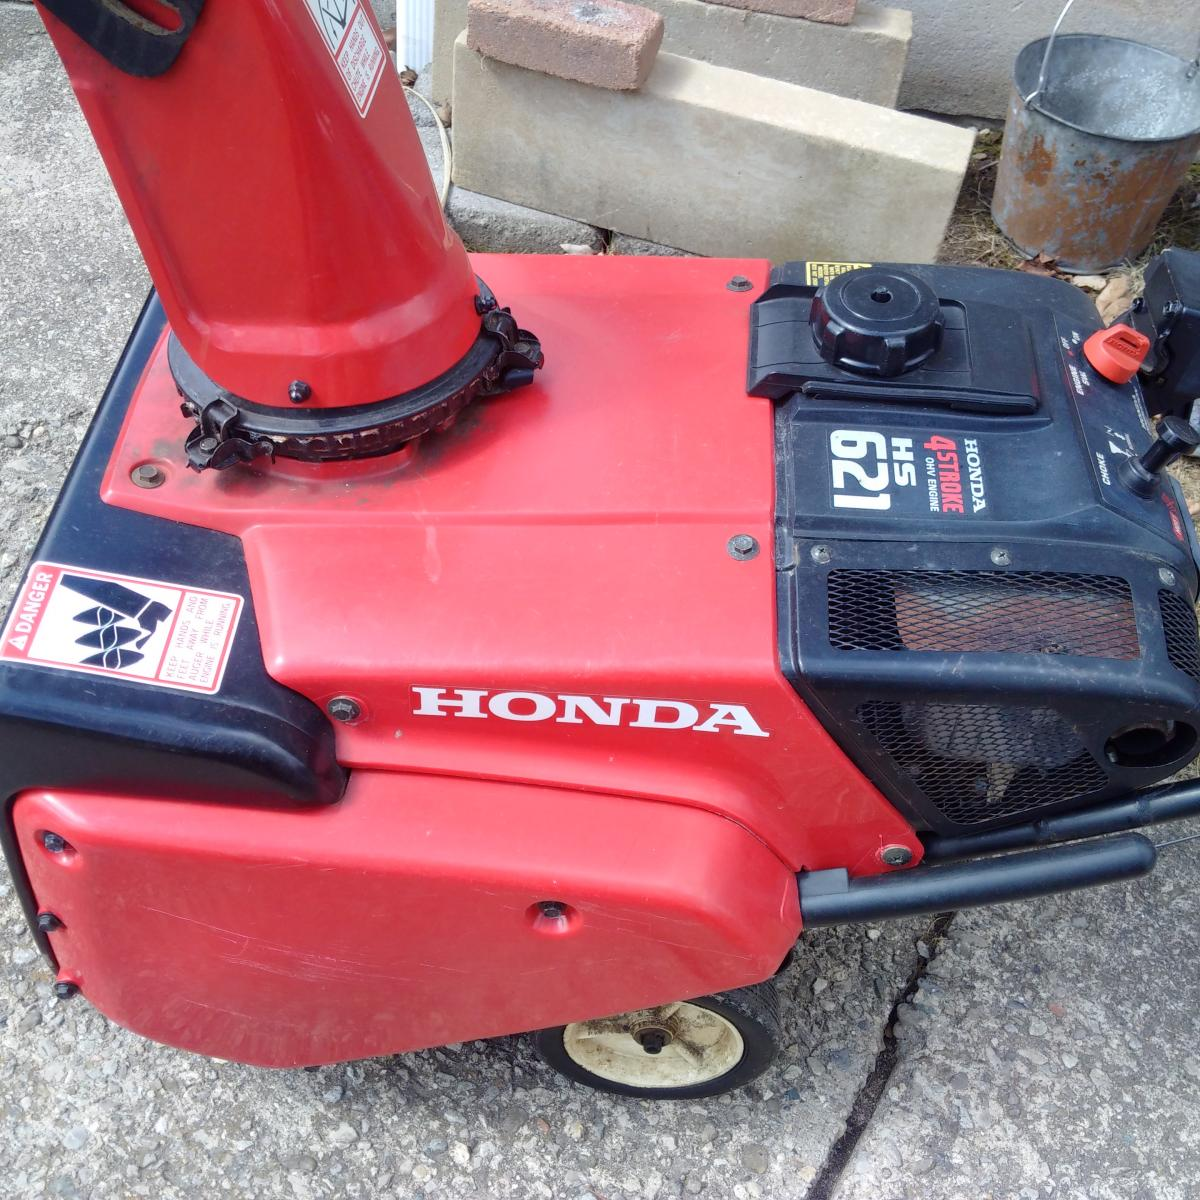 Honda Supercharger For Sale: Snowblower Forum : Snow Blower